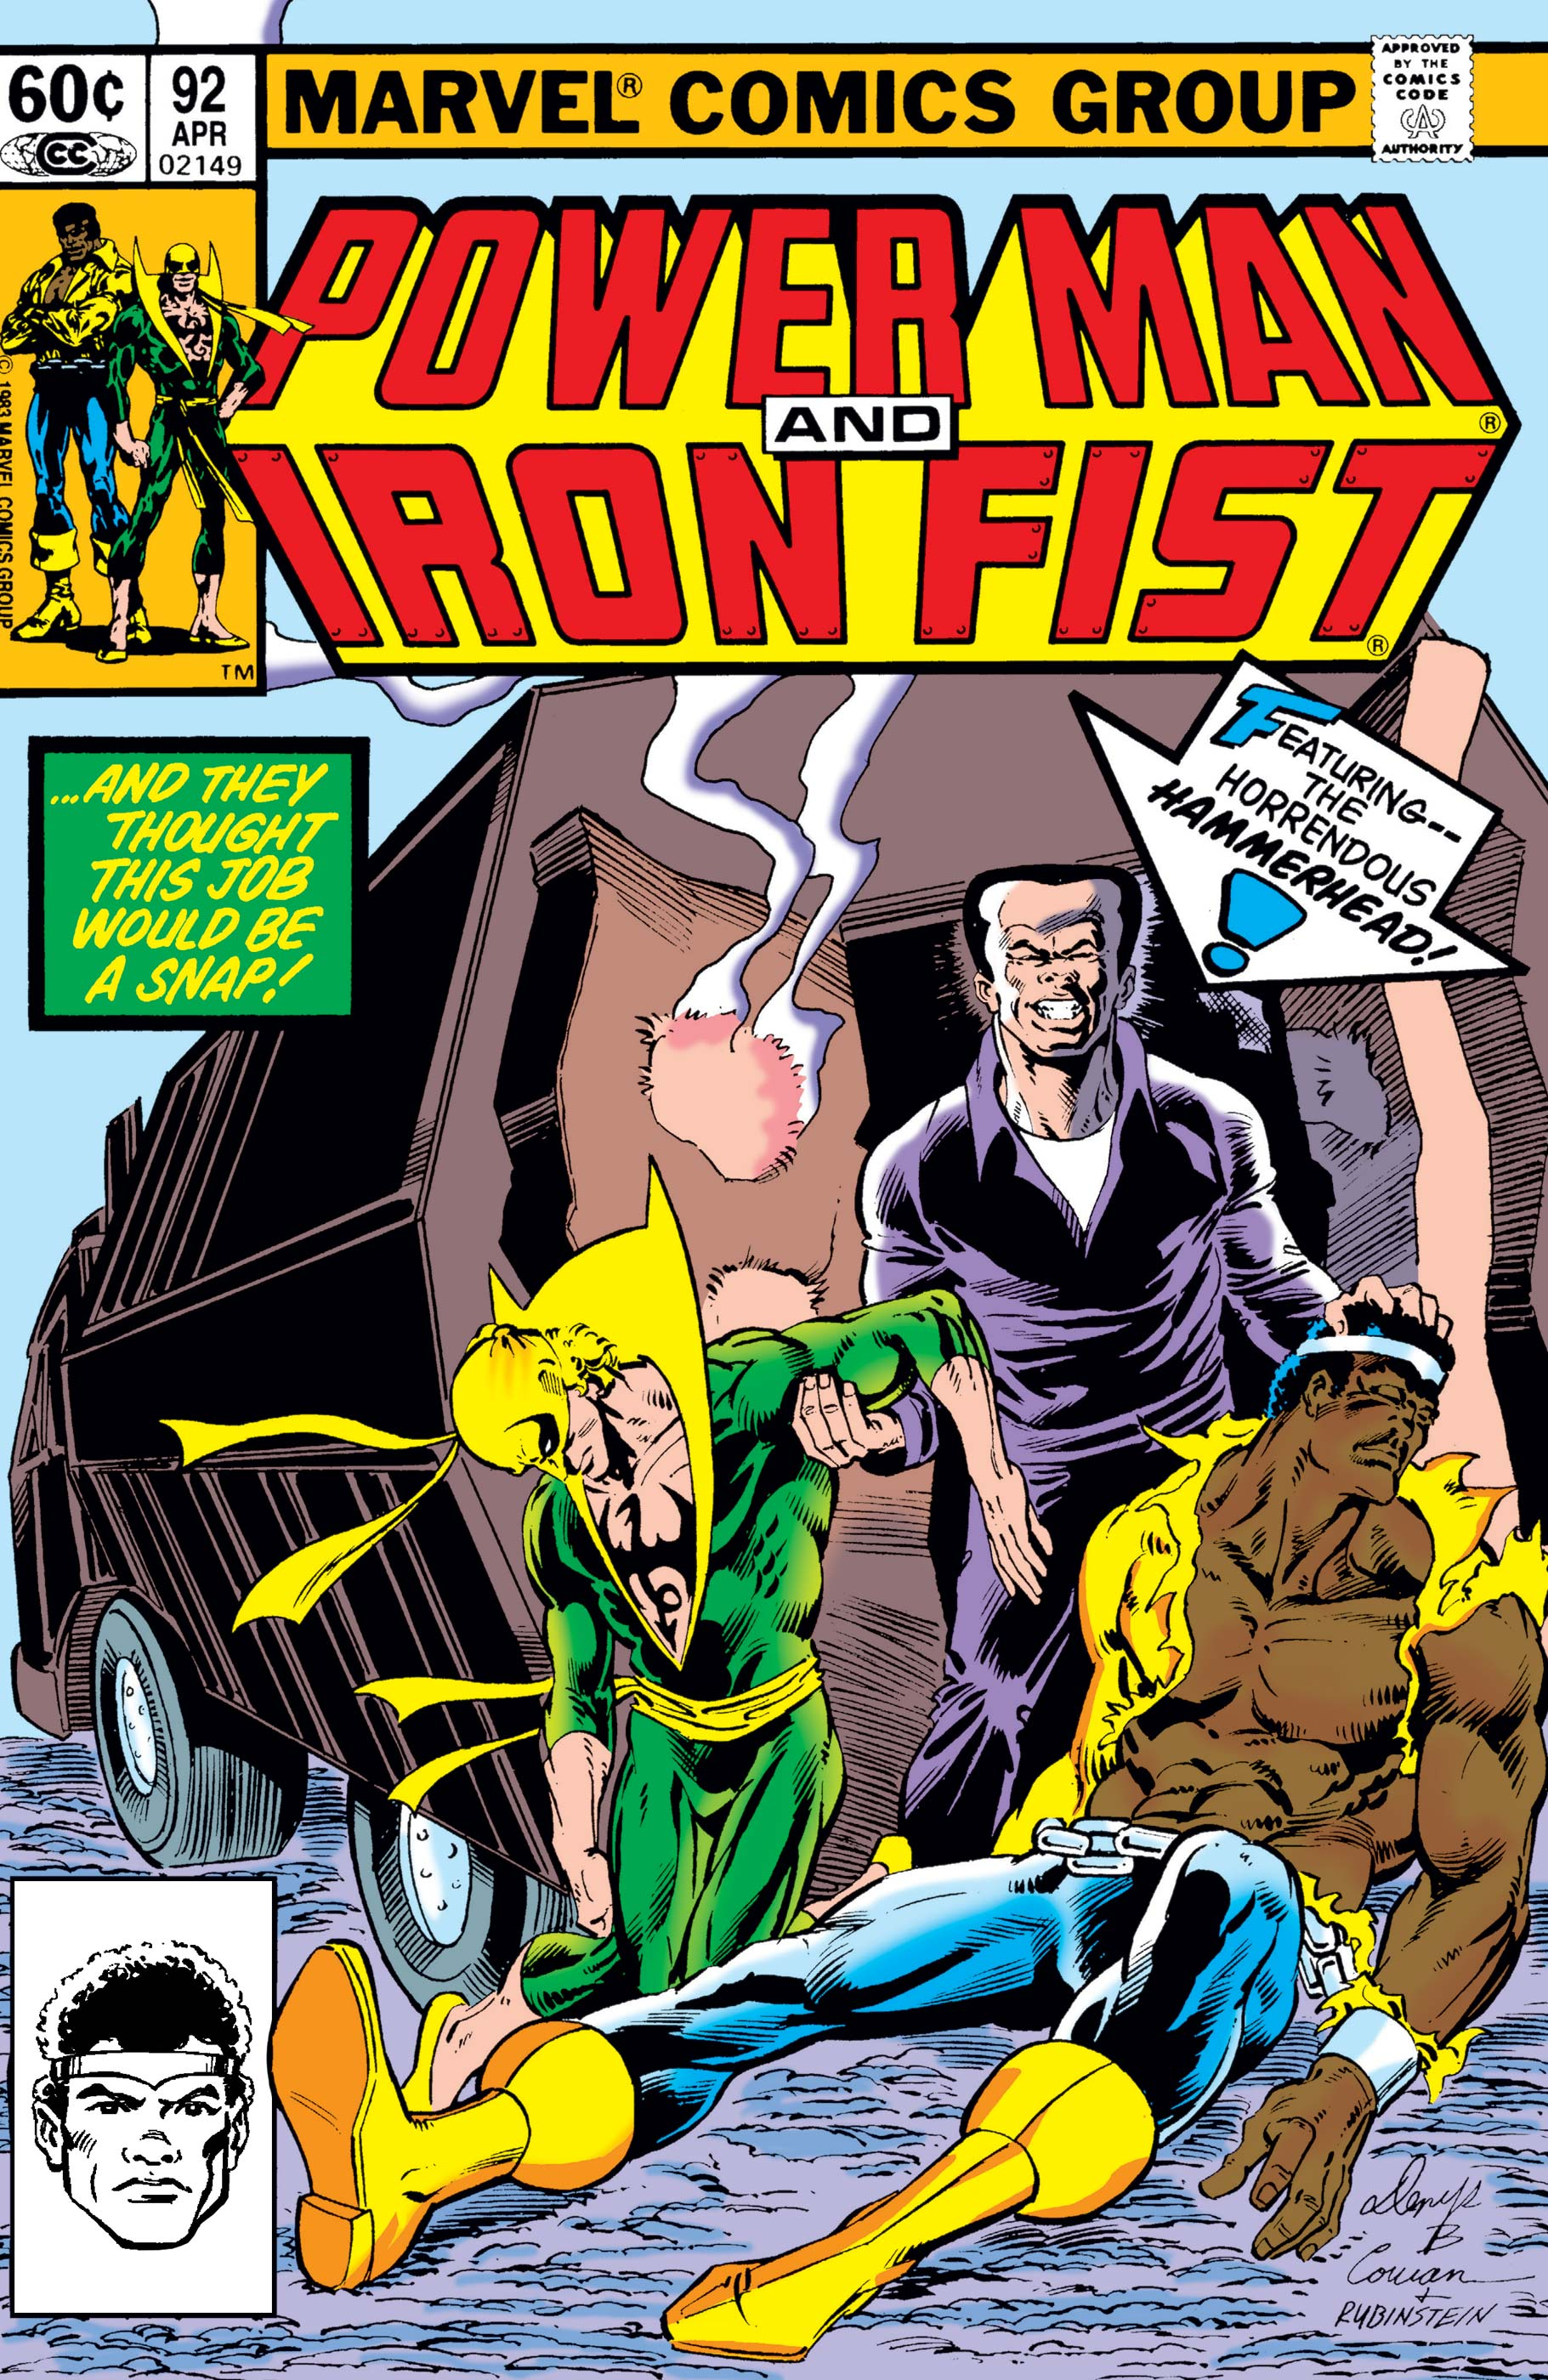 Power Man and Iron Fist (1978) #92